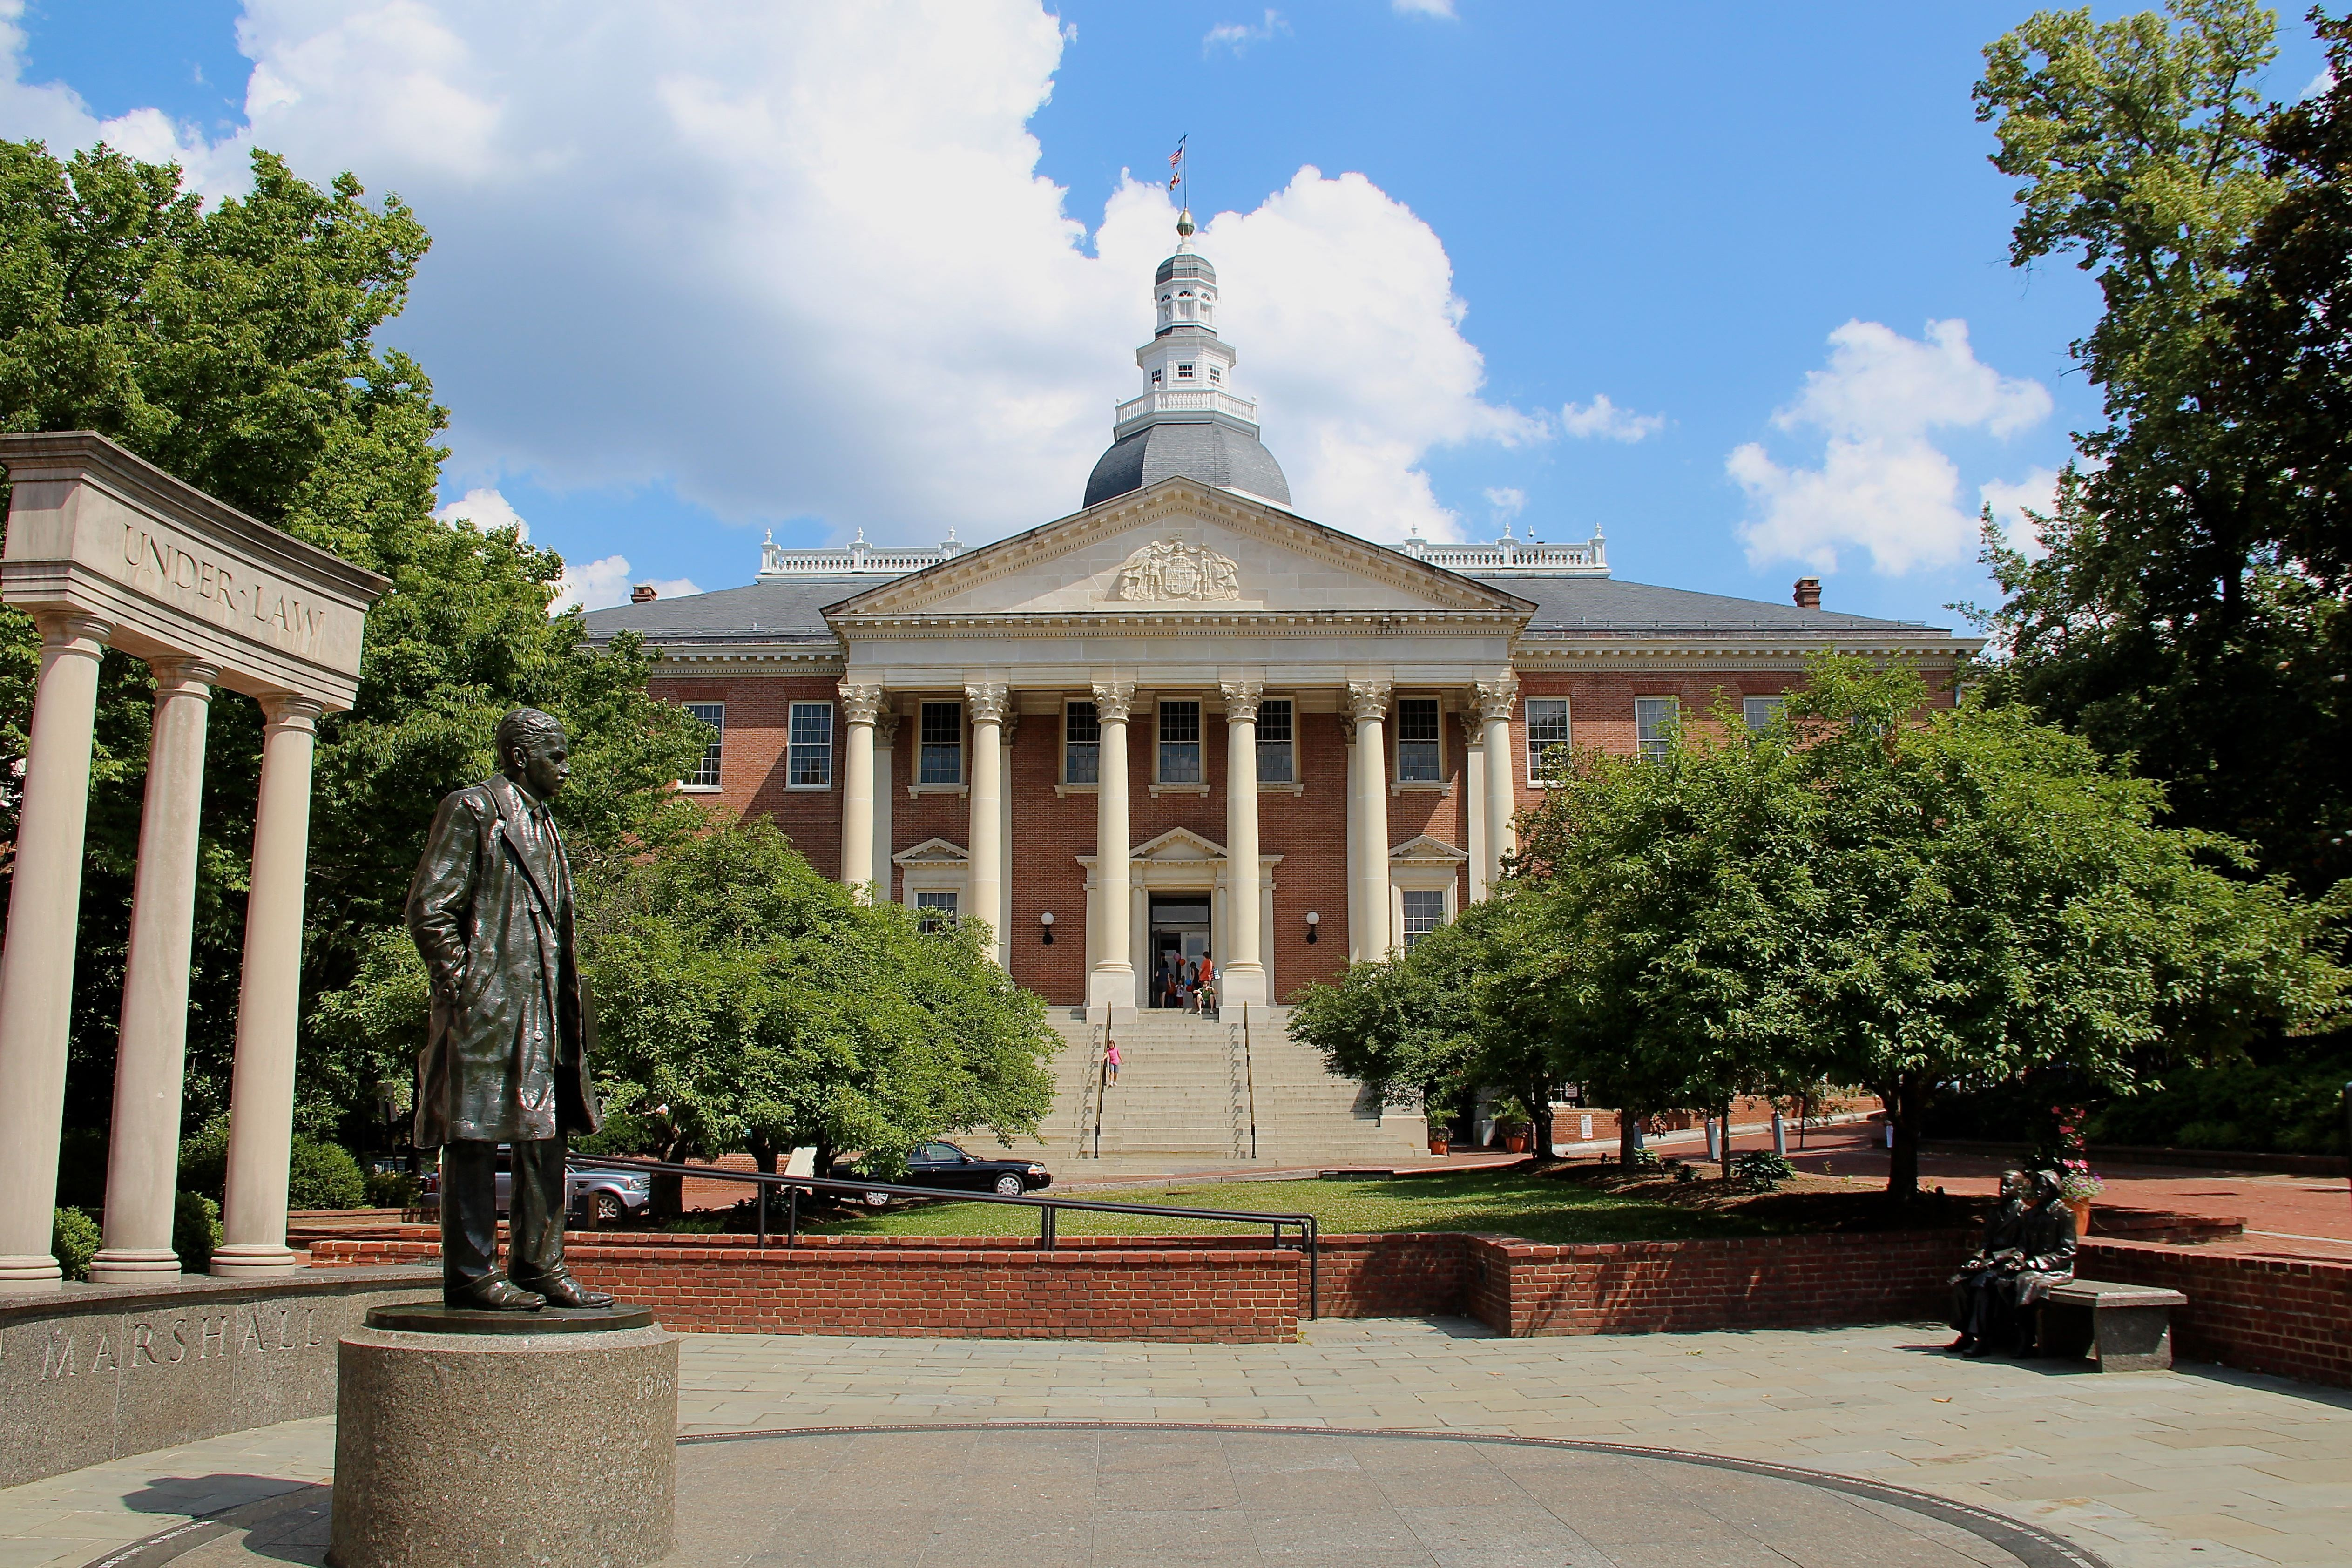 Maryland State House, state capitol building, Annapolis, Maryland, exterior view. (Photo by: Education Images/UIG via Getty Images)